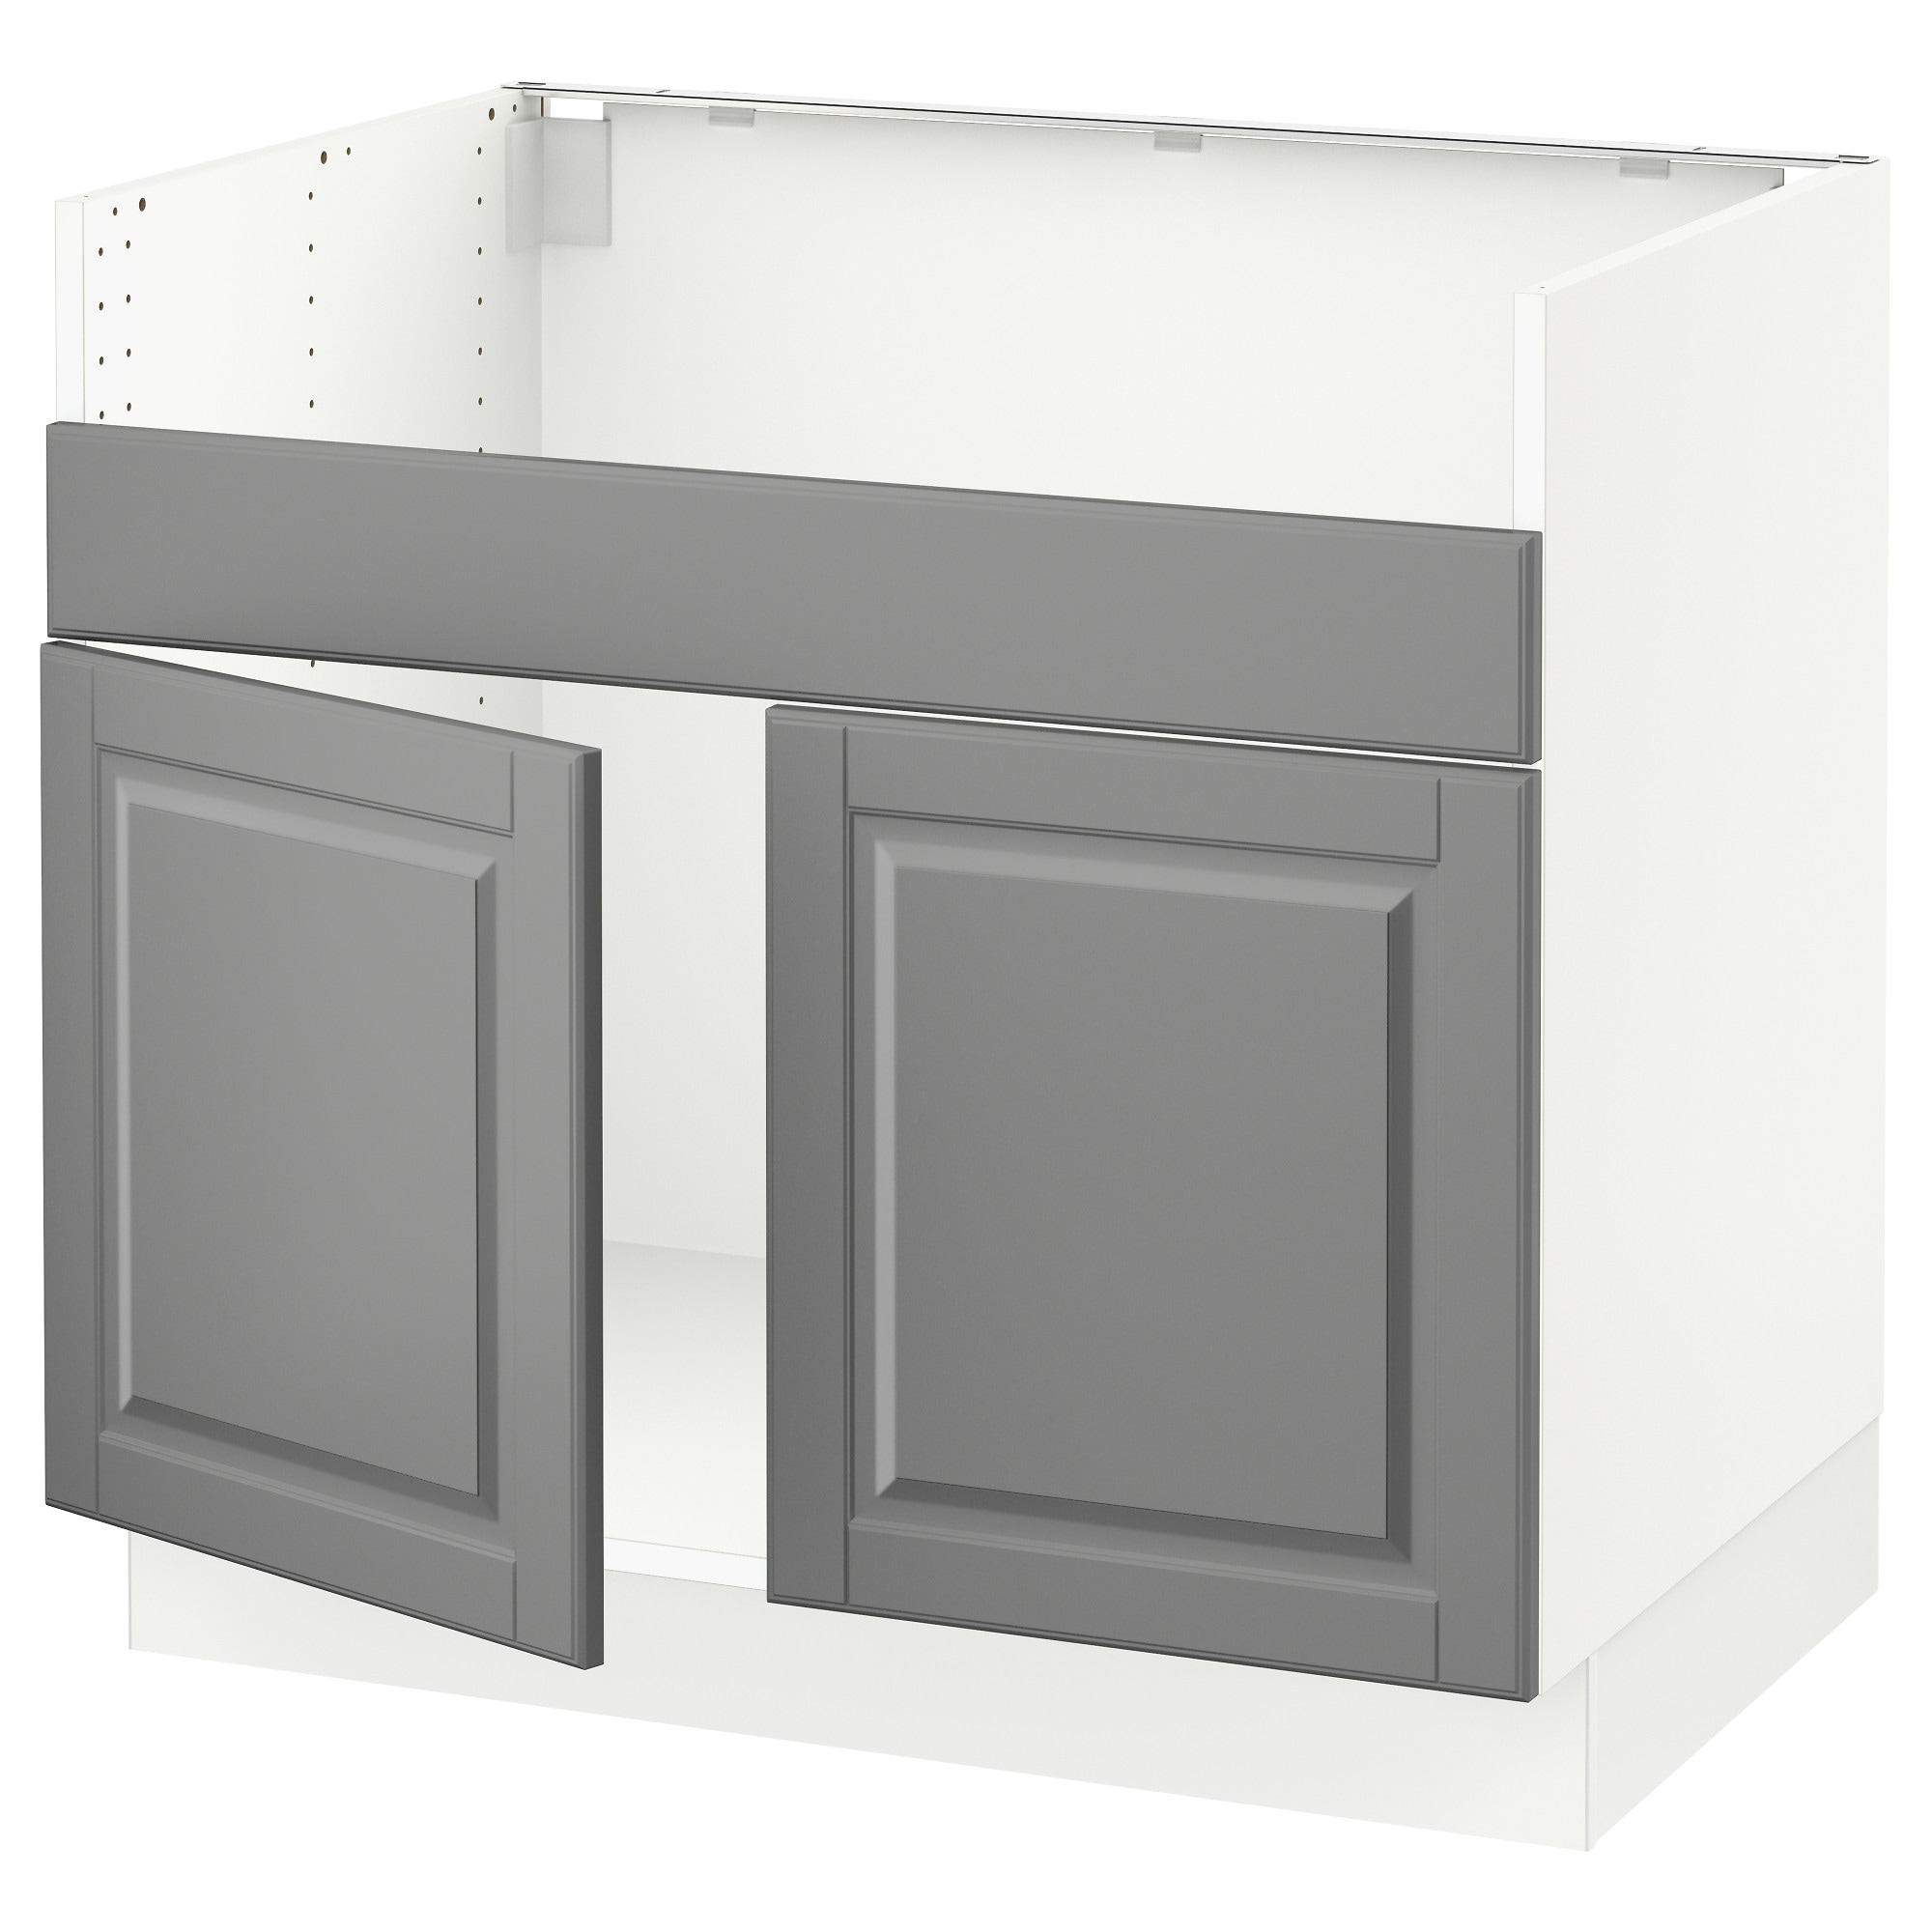 Base Cabinets SEKTION system IKEA